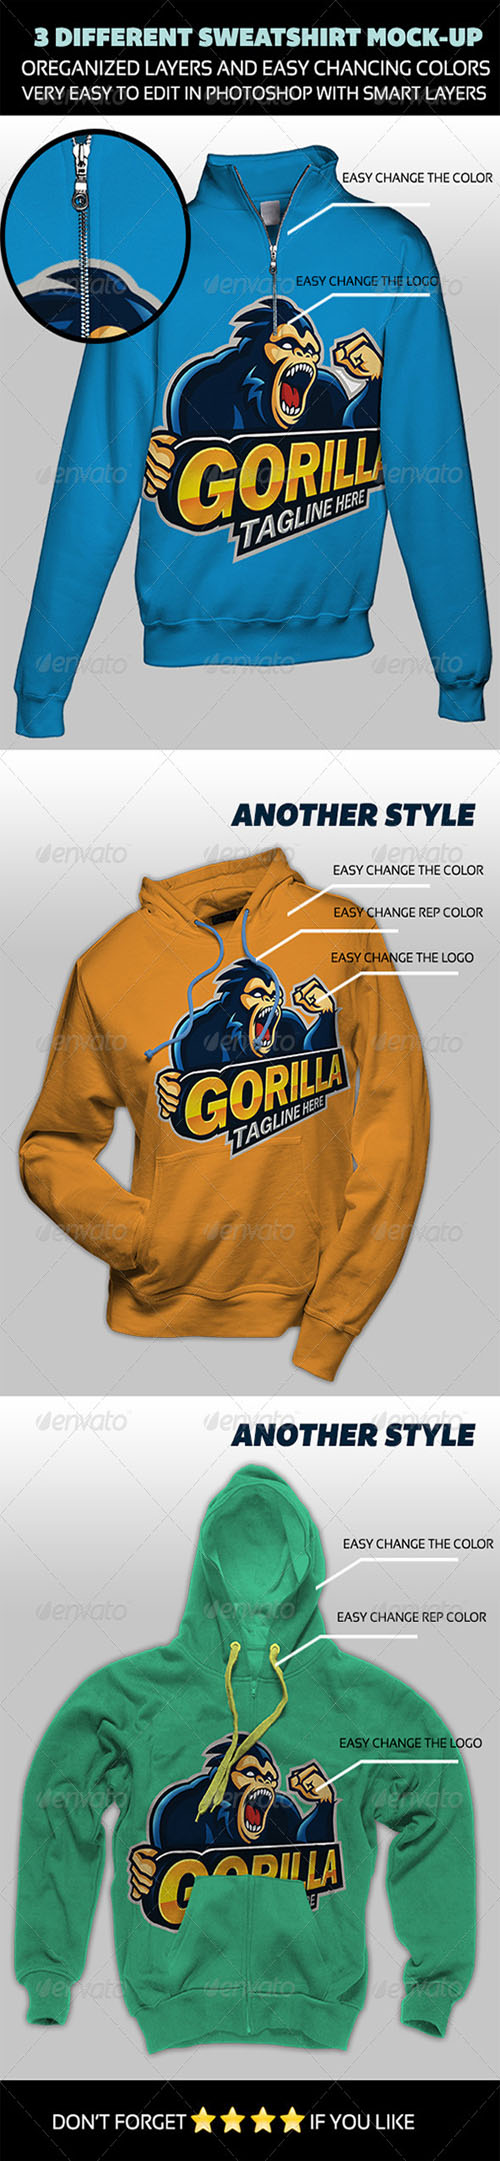 GraphicRiver - 03 Different Sweatshirt Mock-up